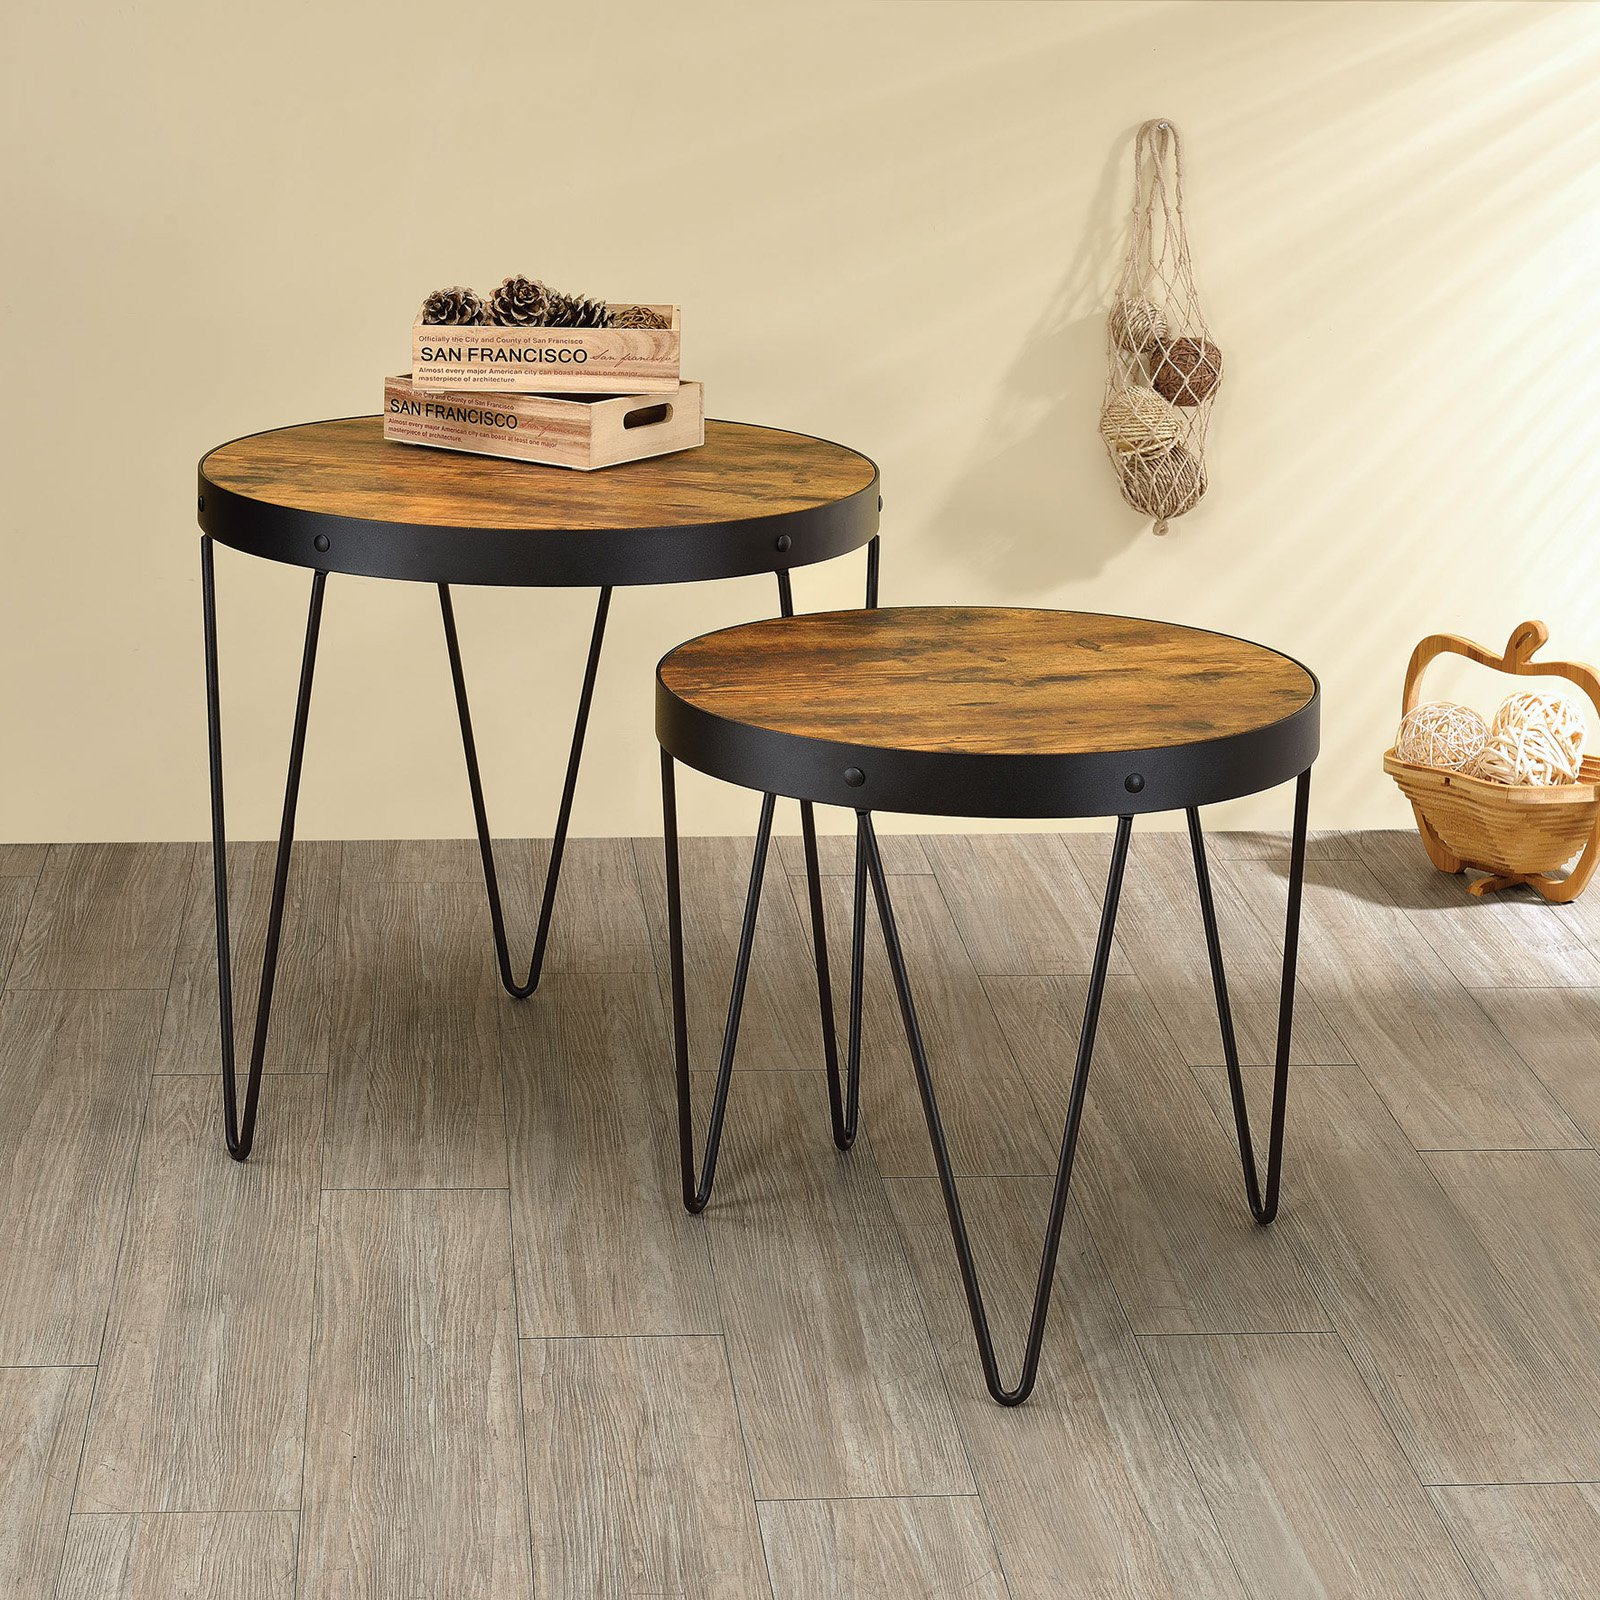 Coaster Company Accent Table, Honey Cherry, Veneer, Black Legs, Two Piece Nesting Table